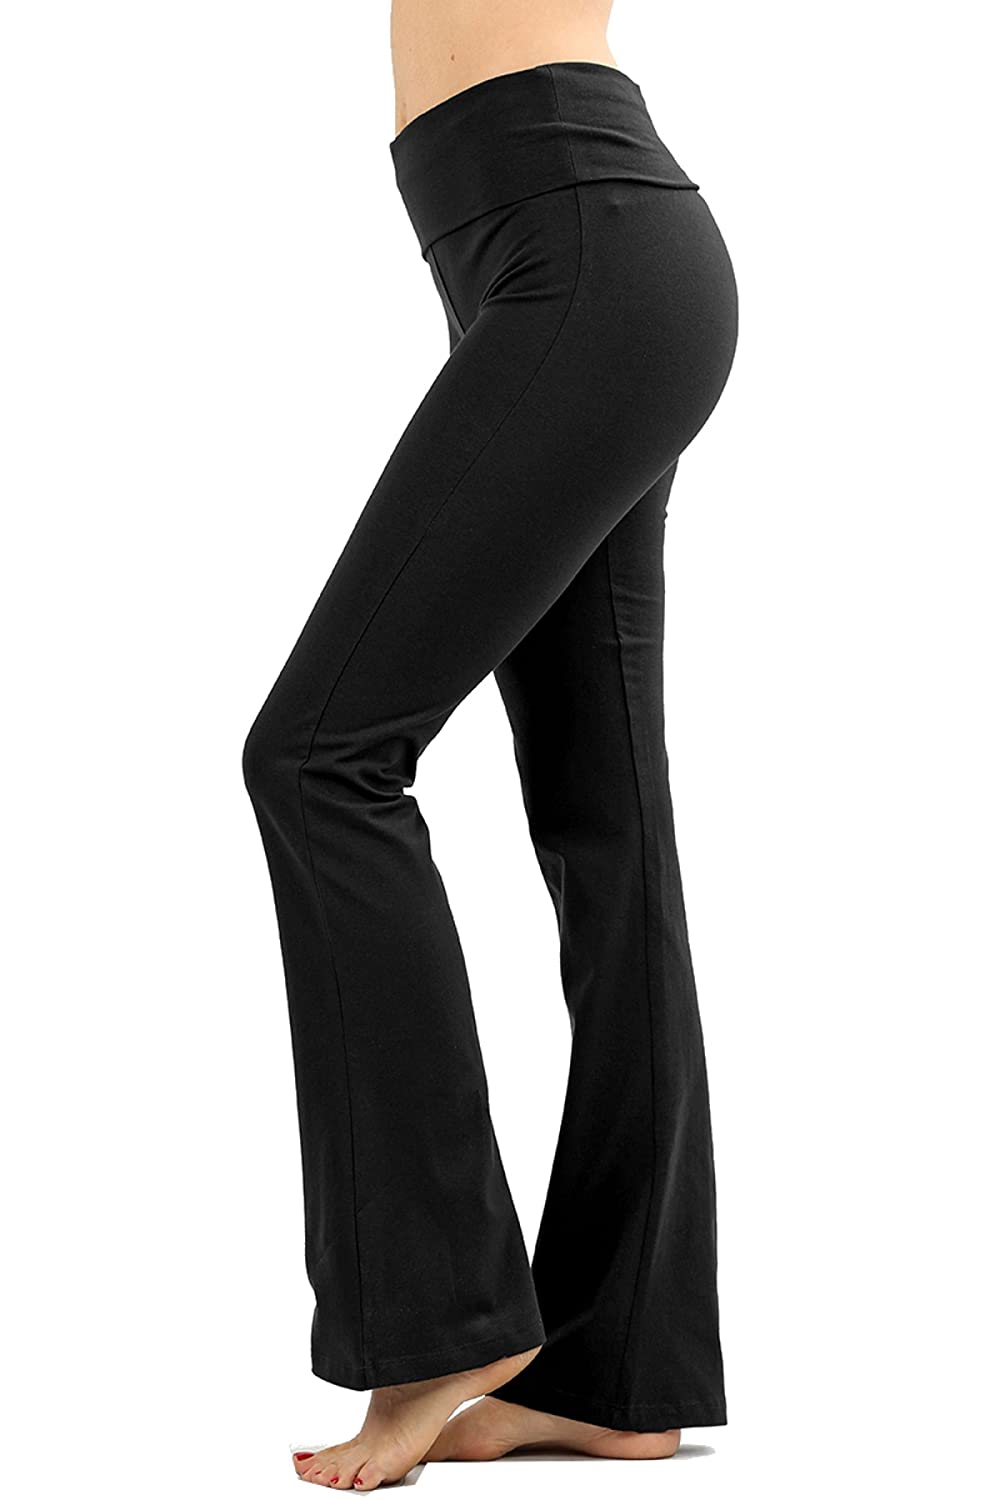 45d7115582 Soft and Light Yoga Pants Fold-over Waistband and Flared Leg Opening Size -  Small: Inseam: 30